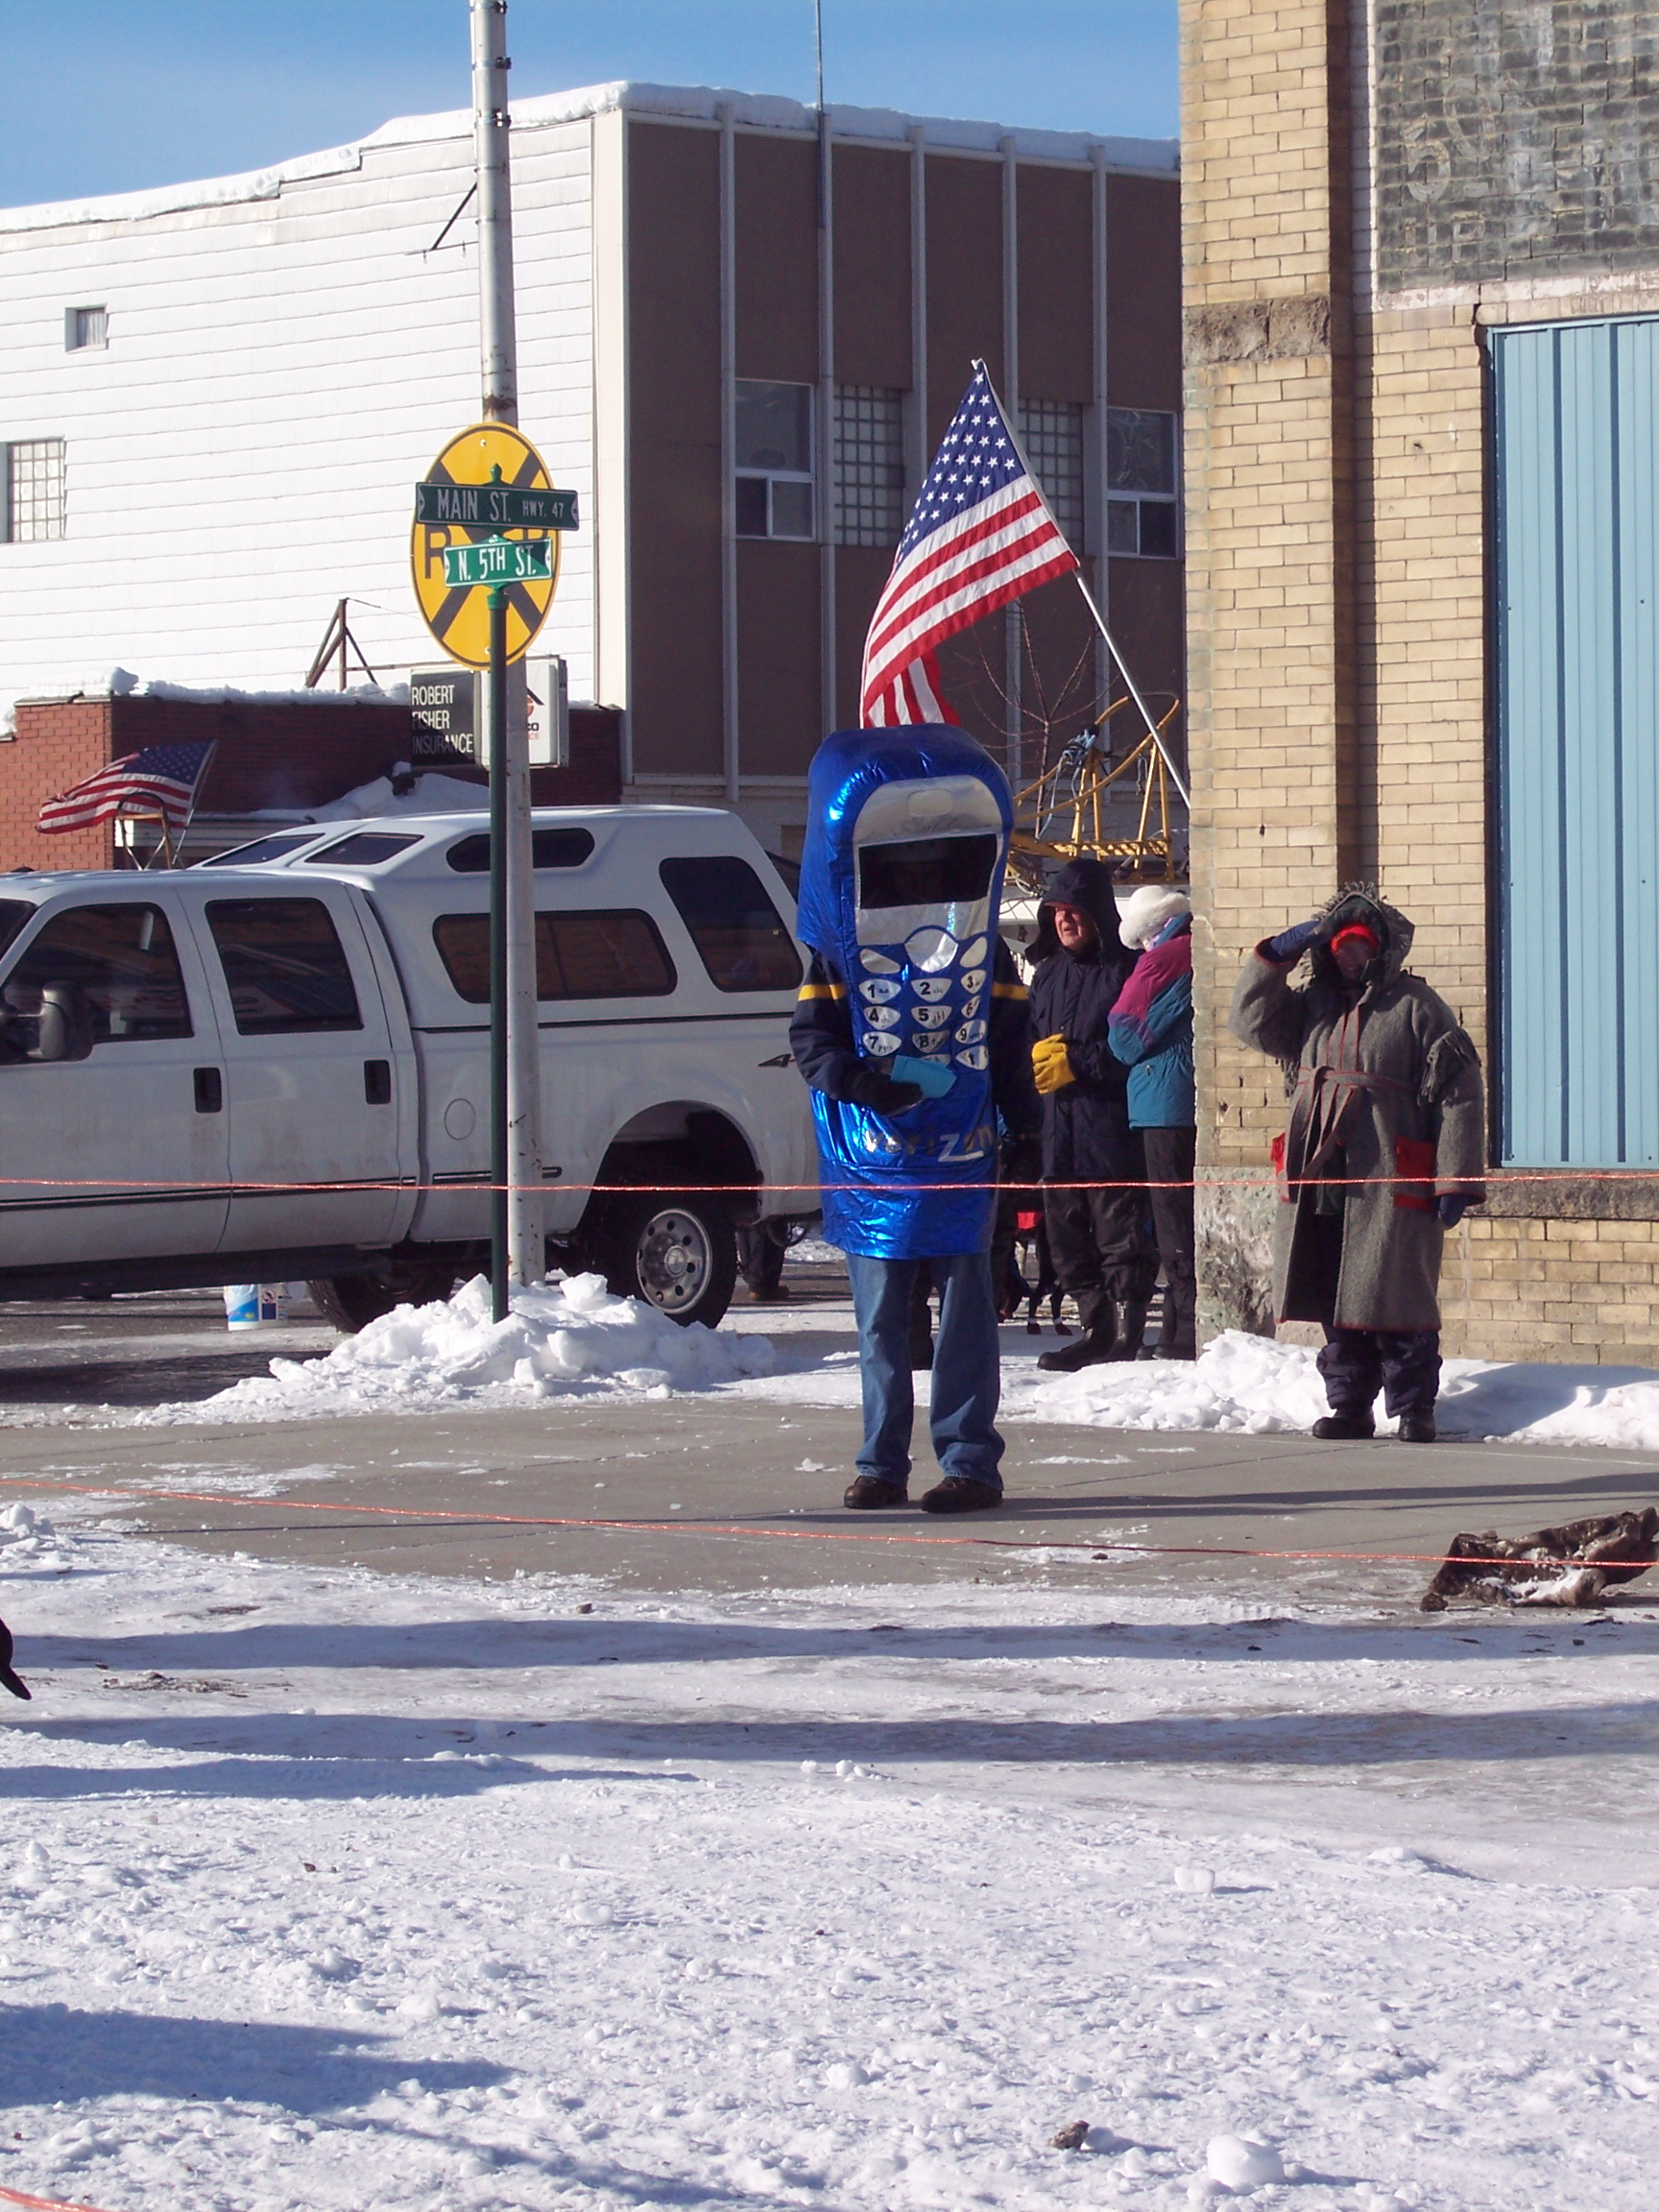 Many different kinds of spectators cheered on the dogs and mushers